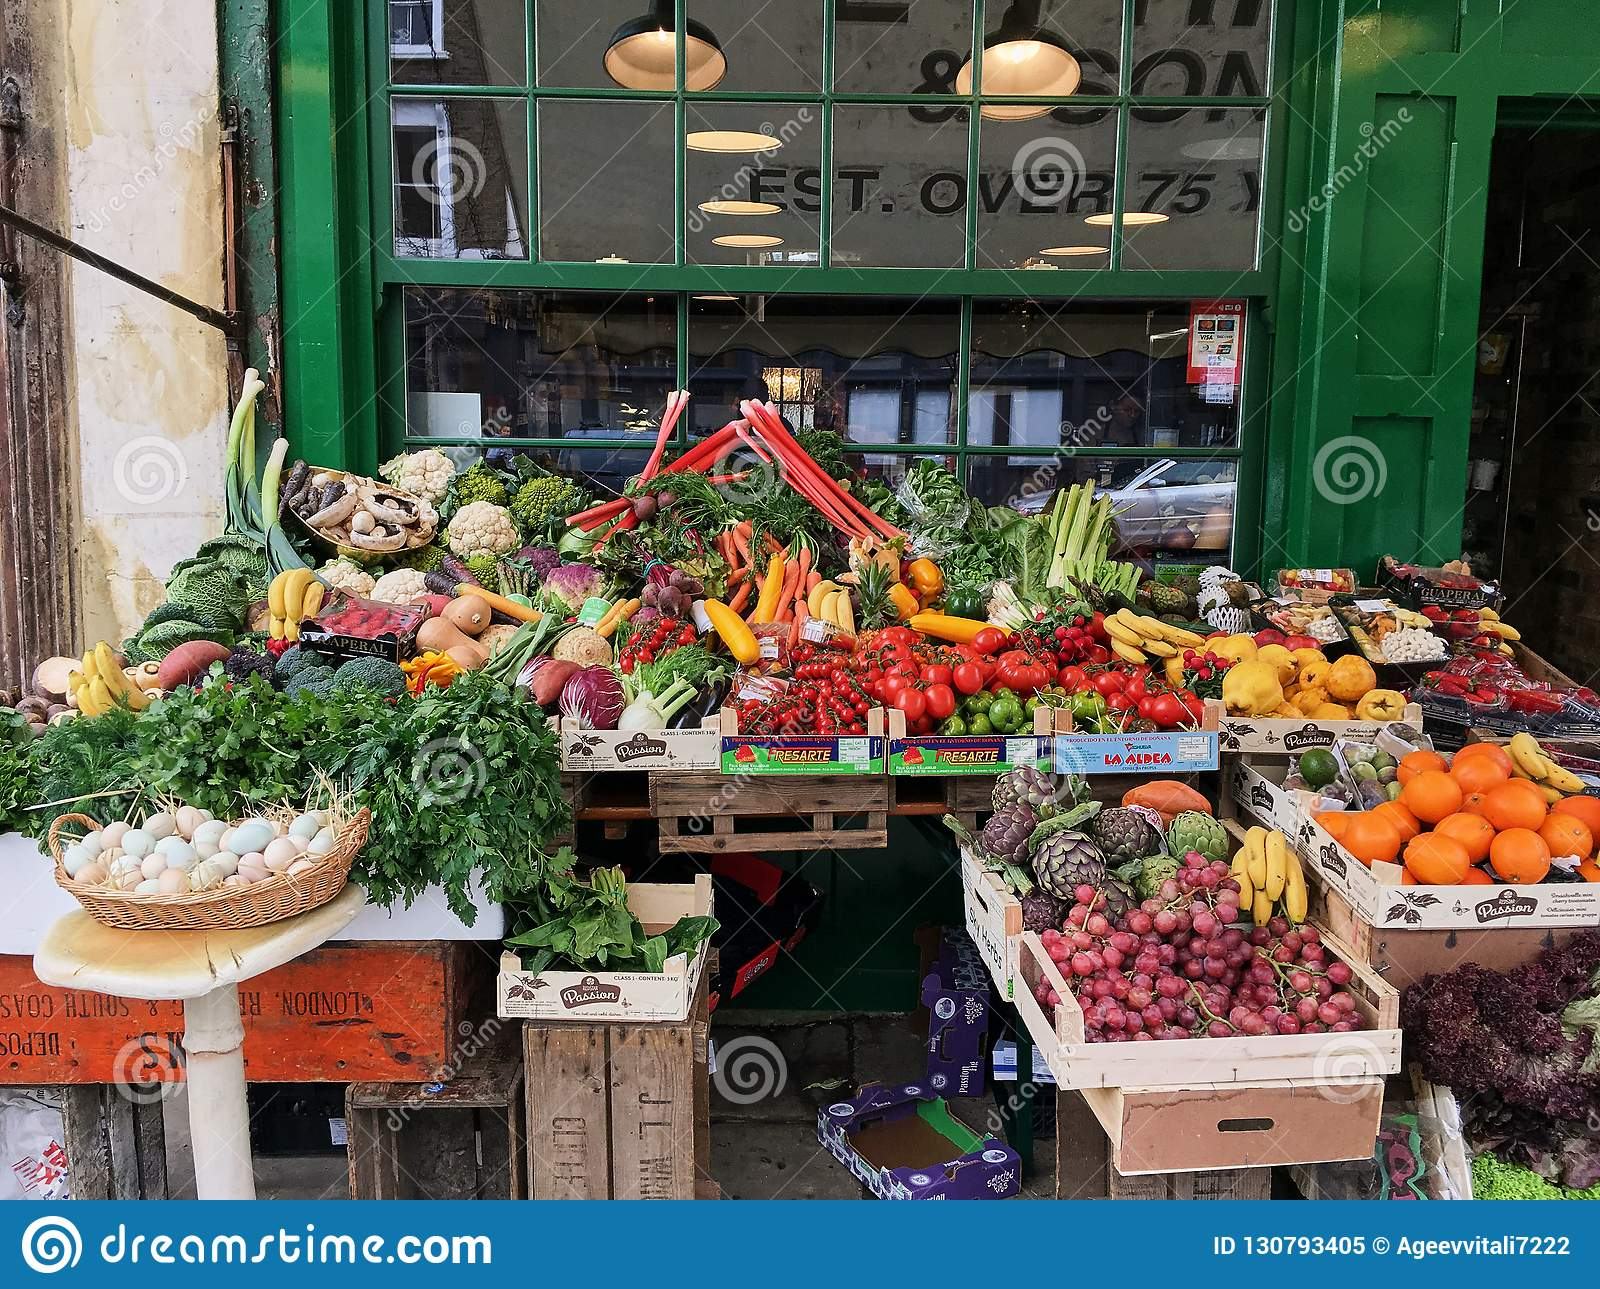 Fresh vegetables on a fruit stand in an outdoor store in London many different vegetables and fruits